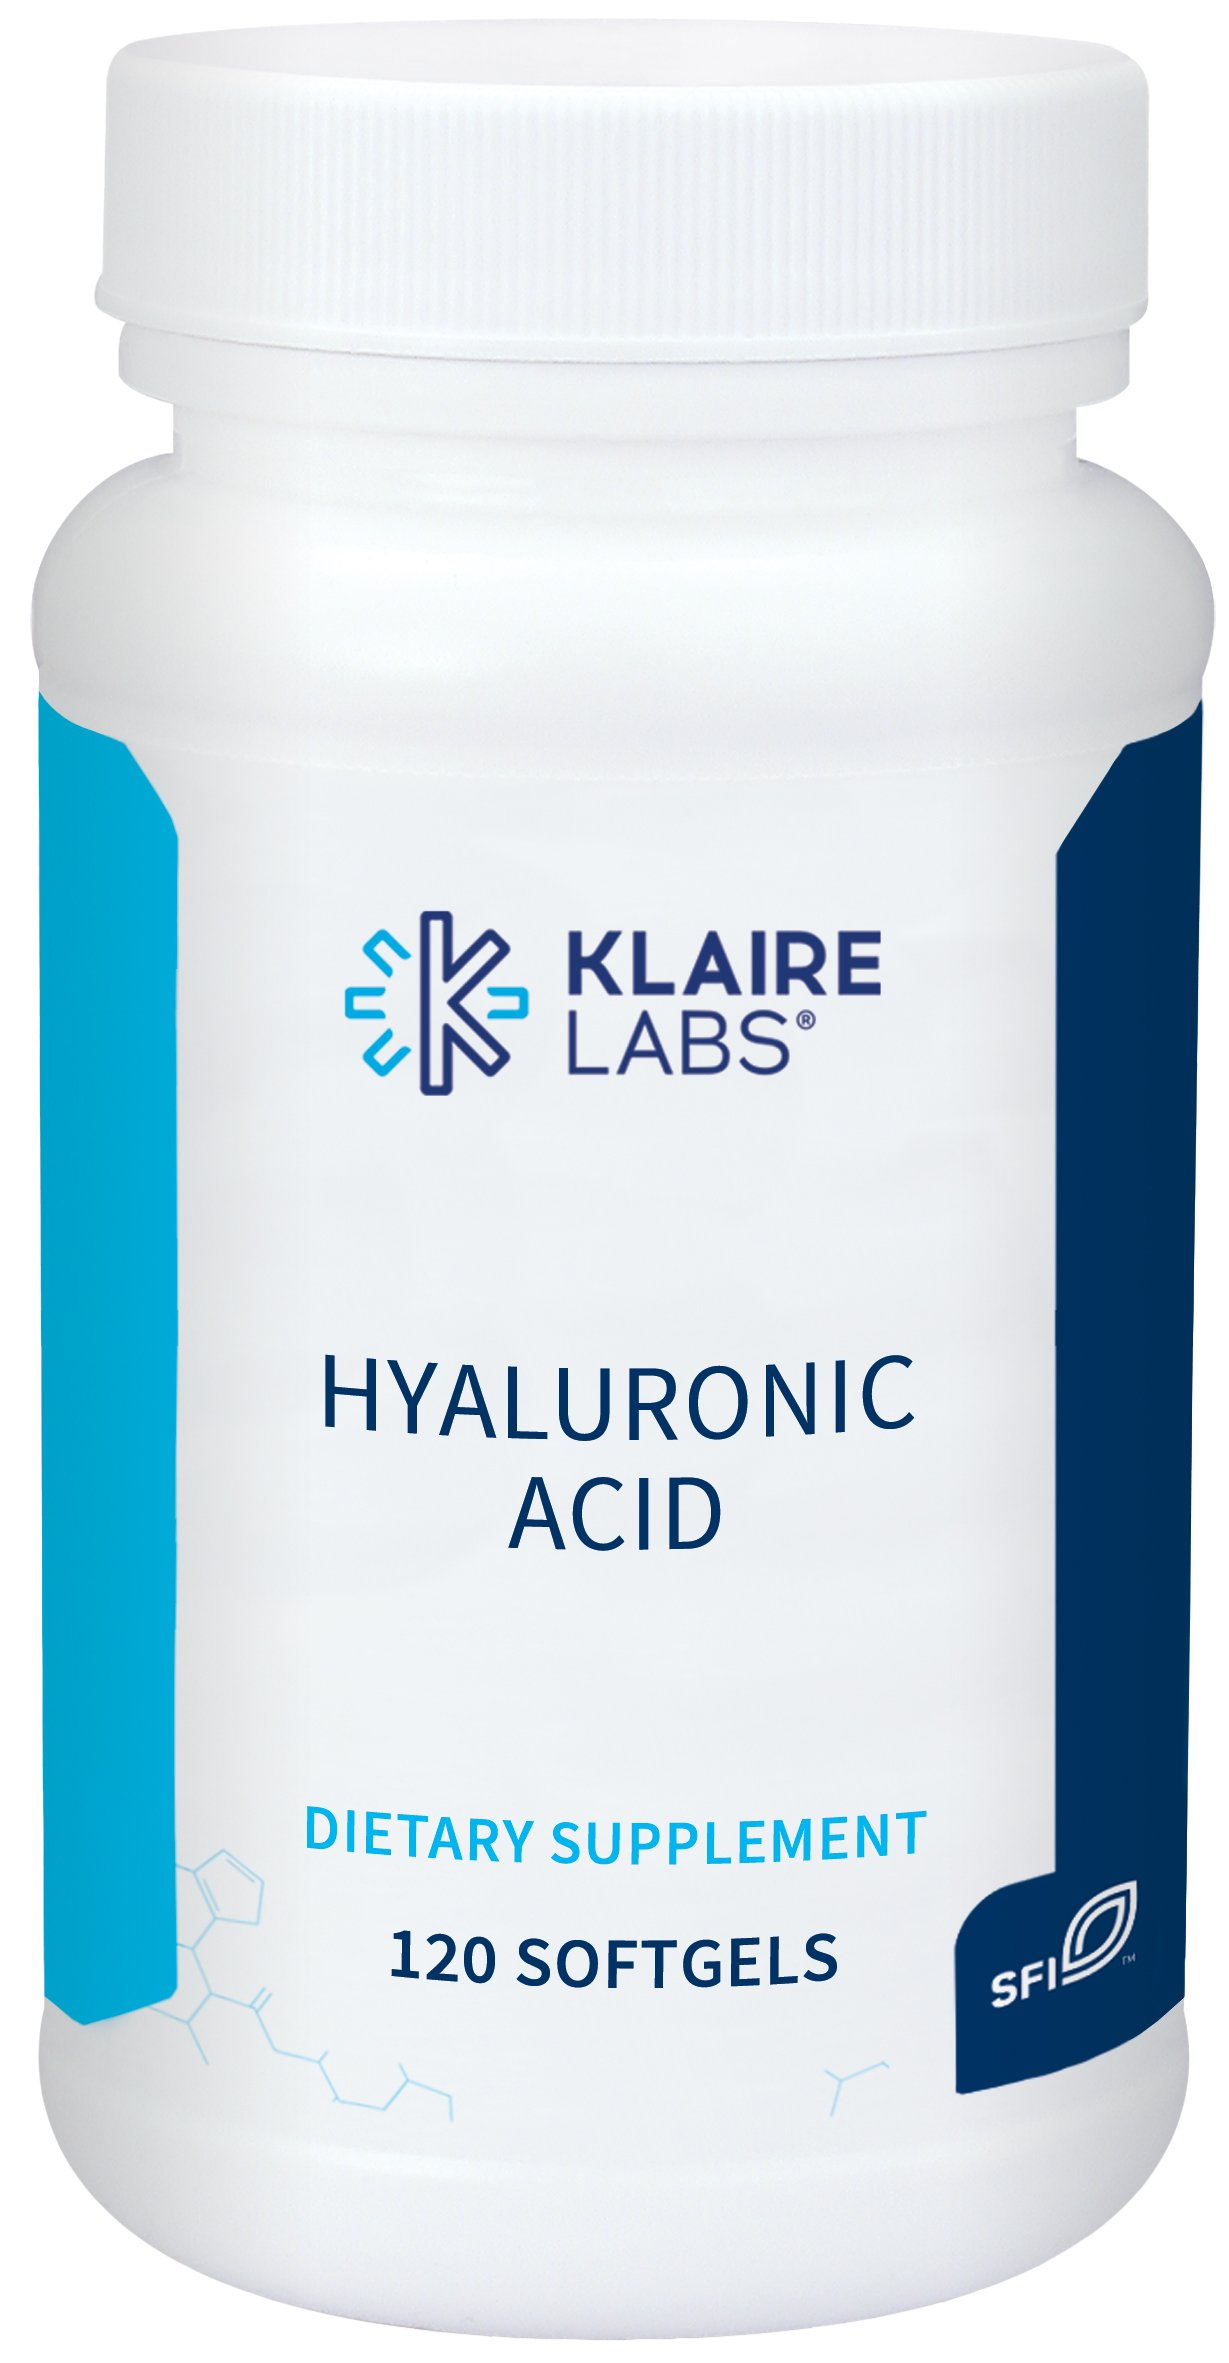 Klaire Labs (ProThera) Hyaluronic Acid - Low Molecular Weight Oral HA (120 Softgels)